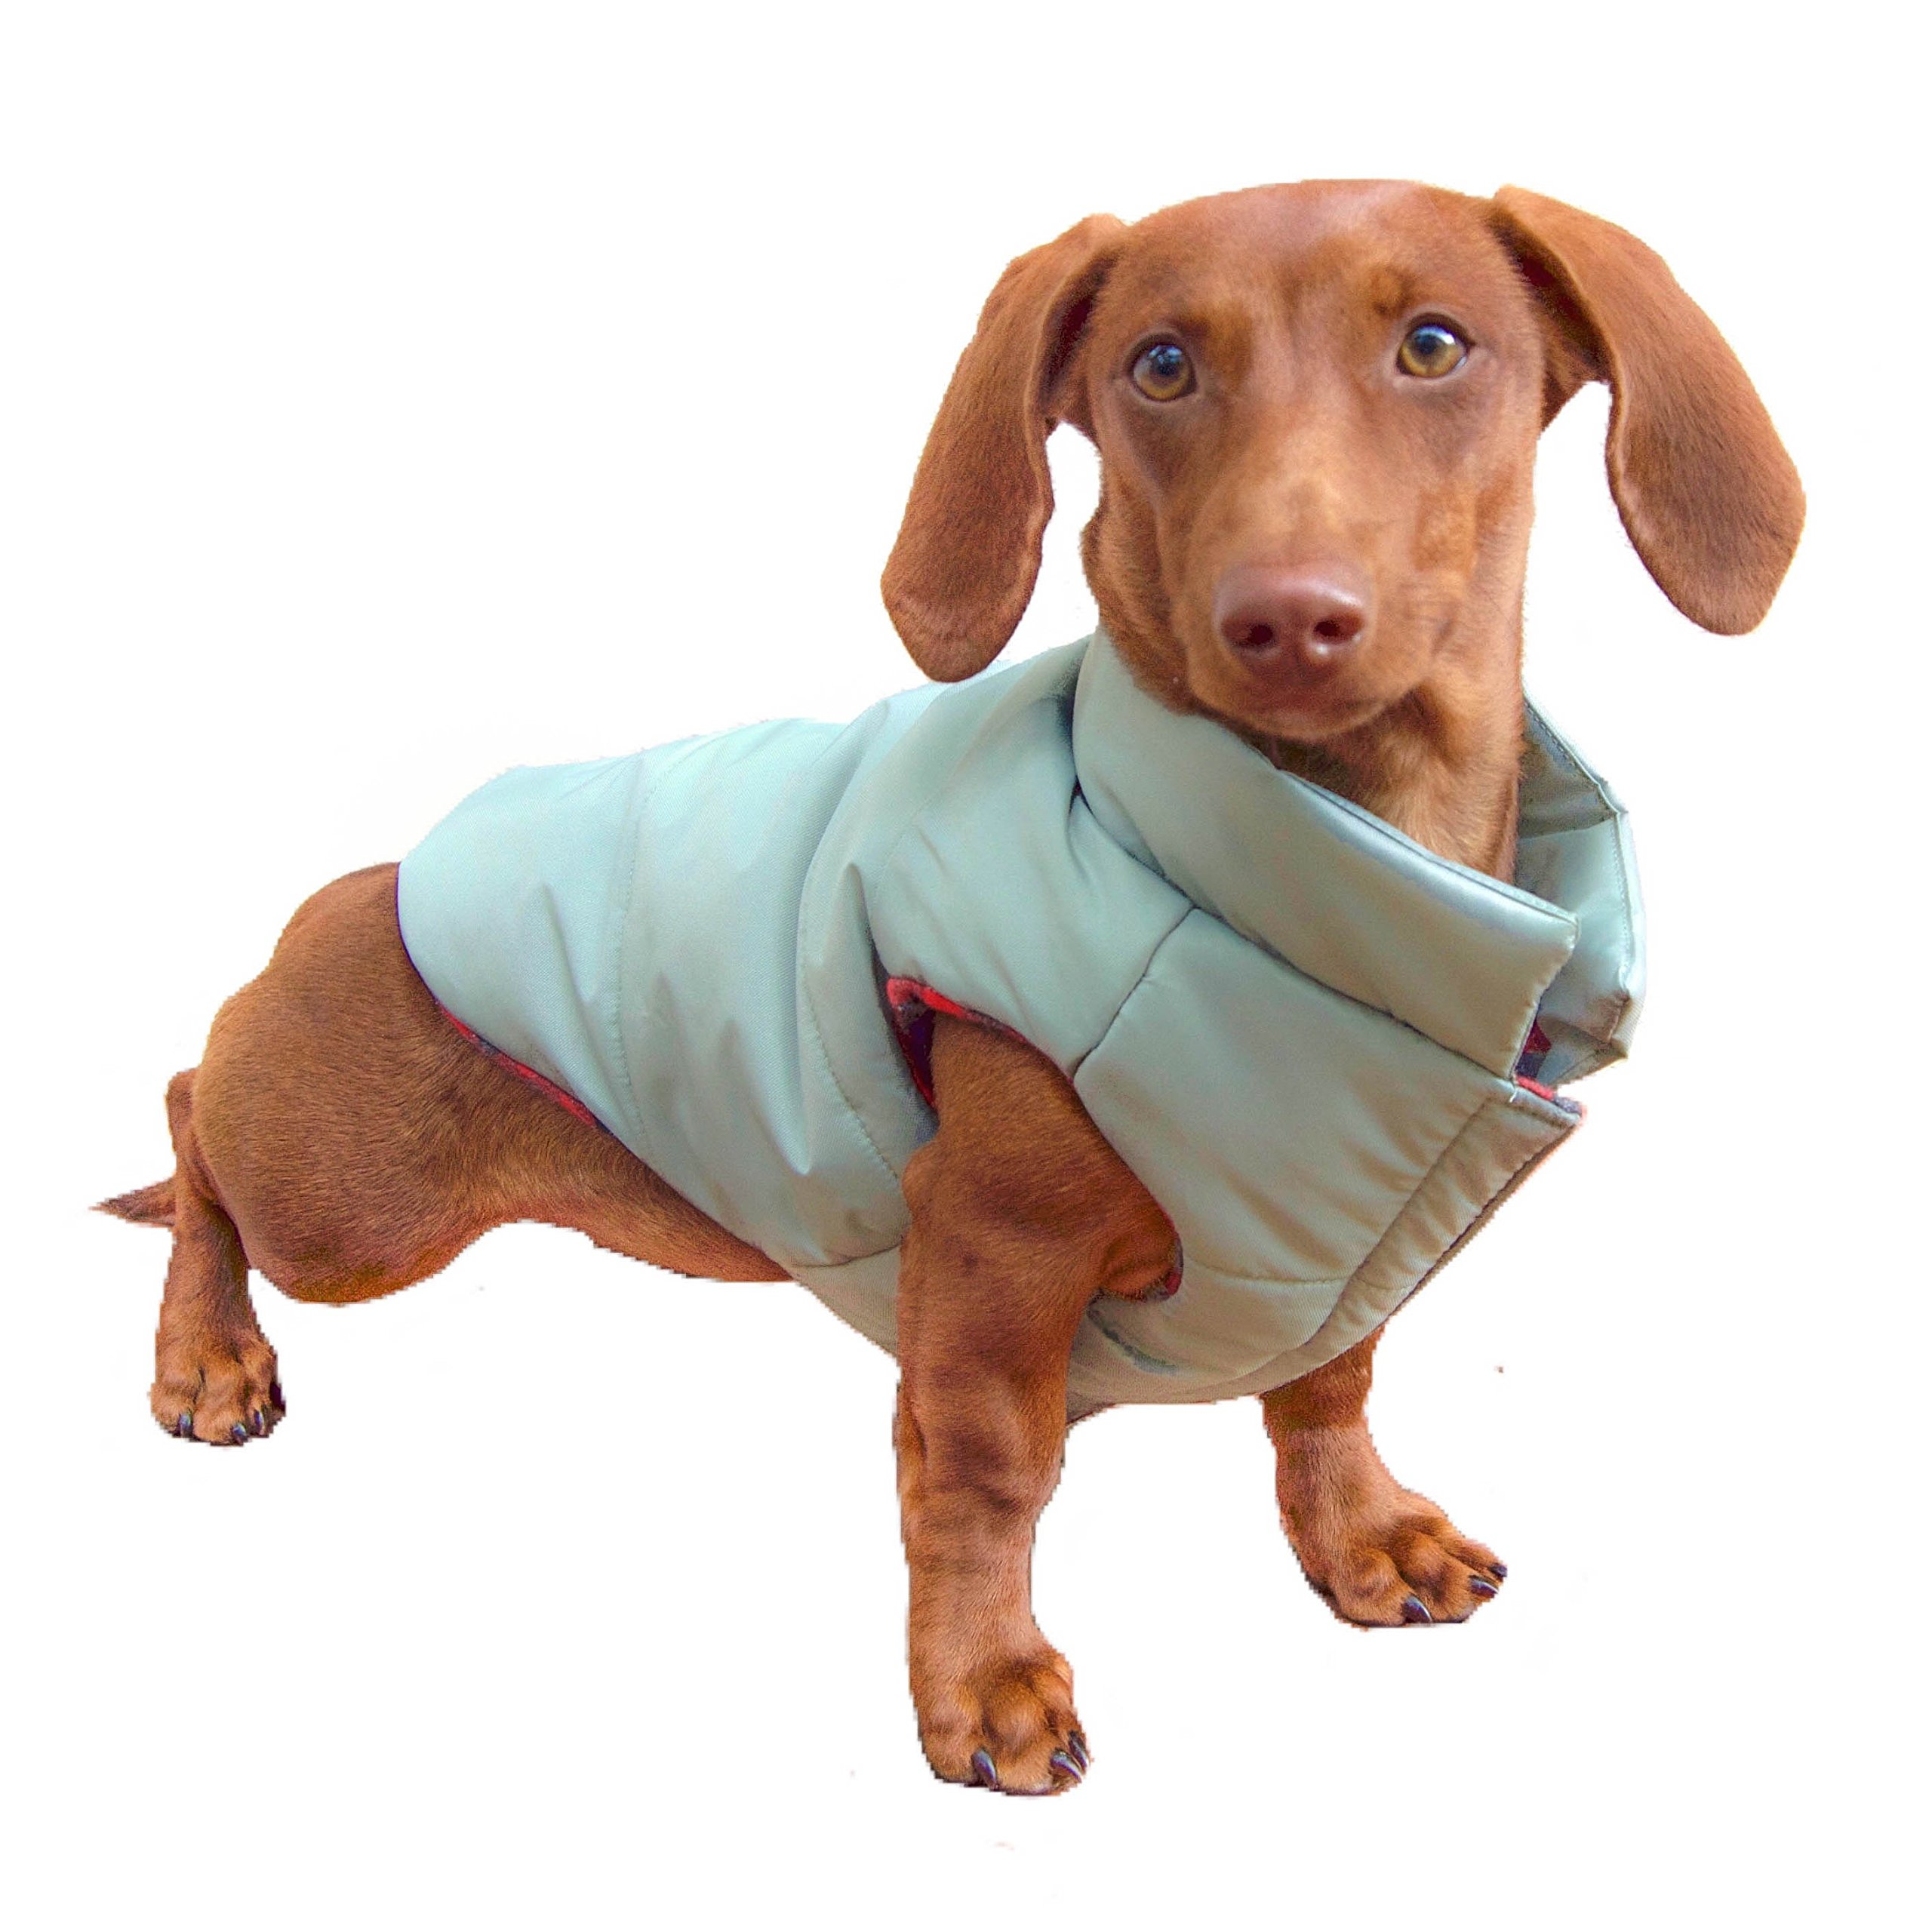 DJANGO Puffer Dog Jacket and Reversible Cold Weather Dog Coat with Full Coverage and Windproof Protection (X-Small, Sage Green/Buffalo Plaid)